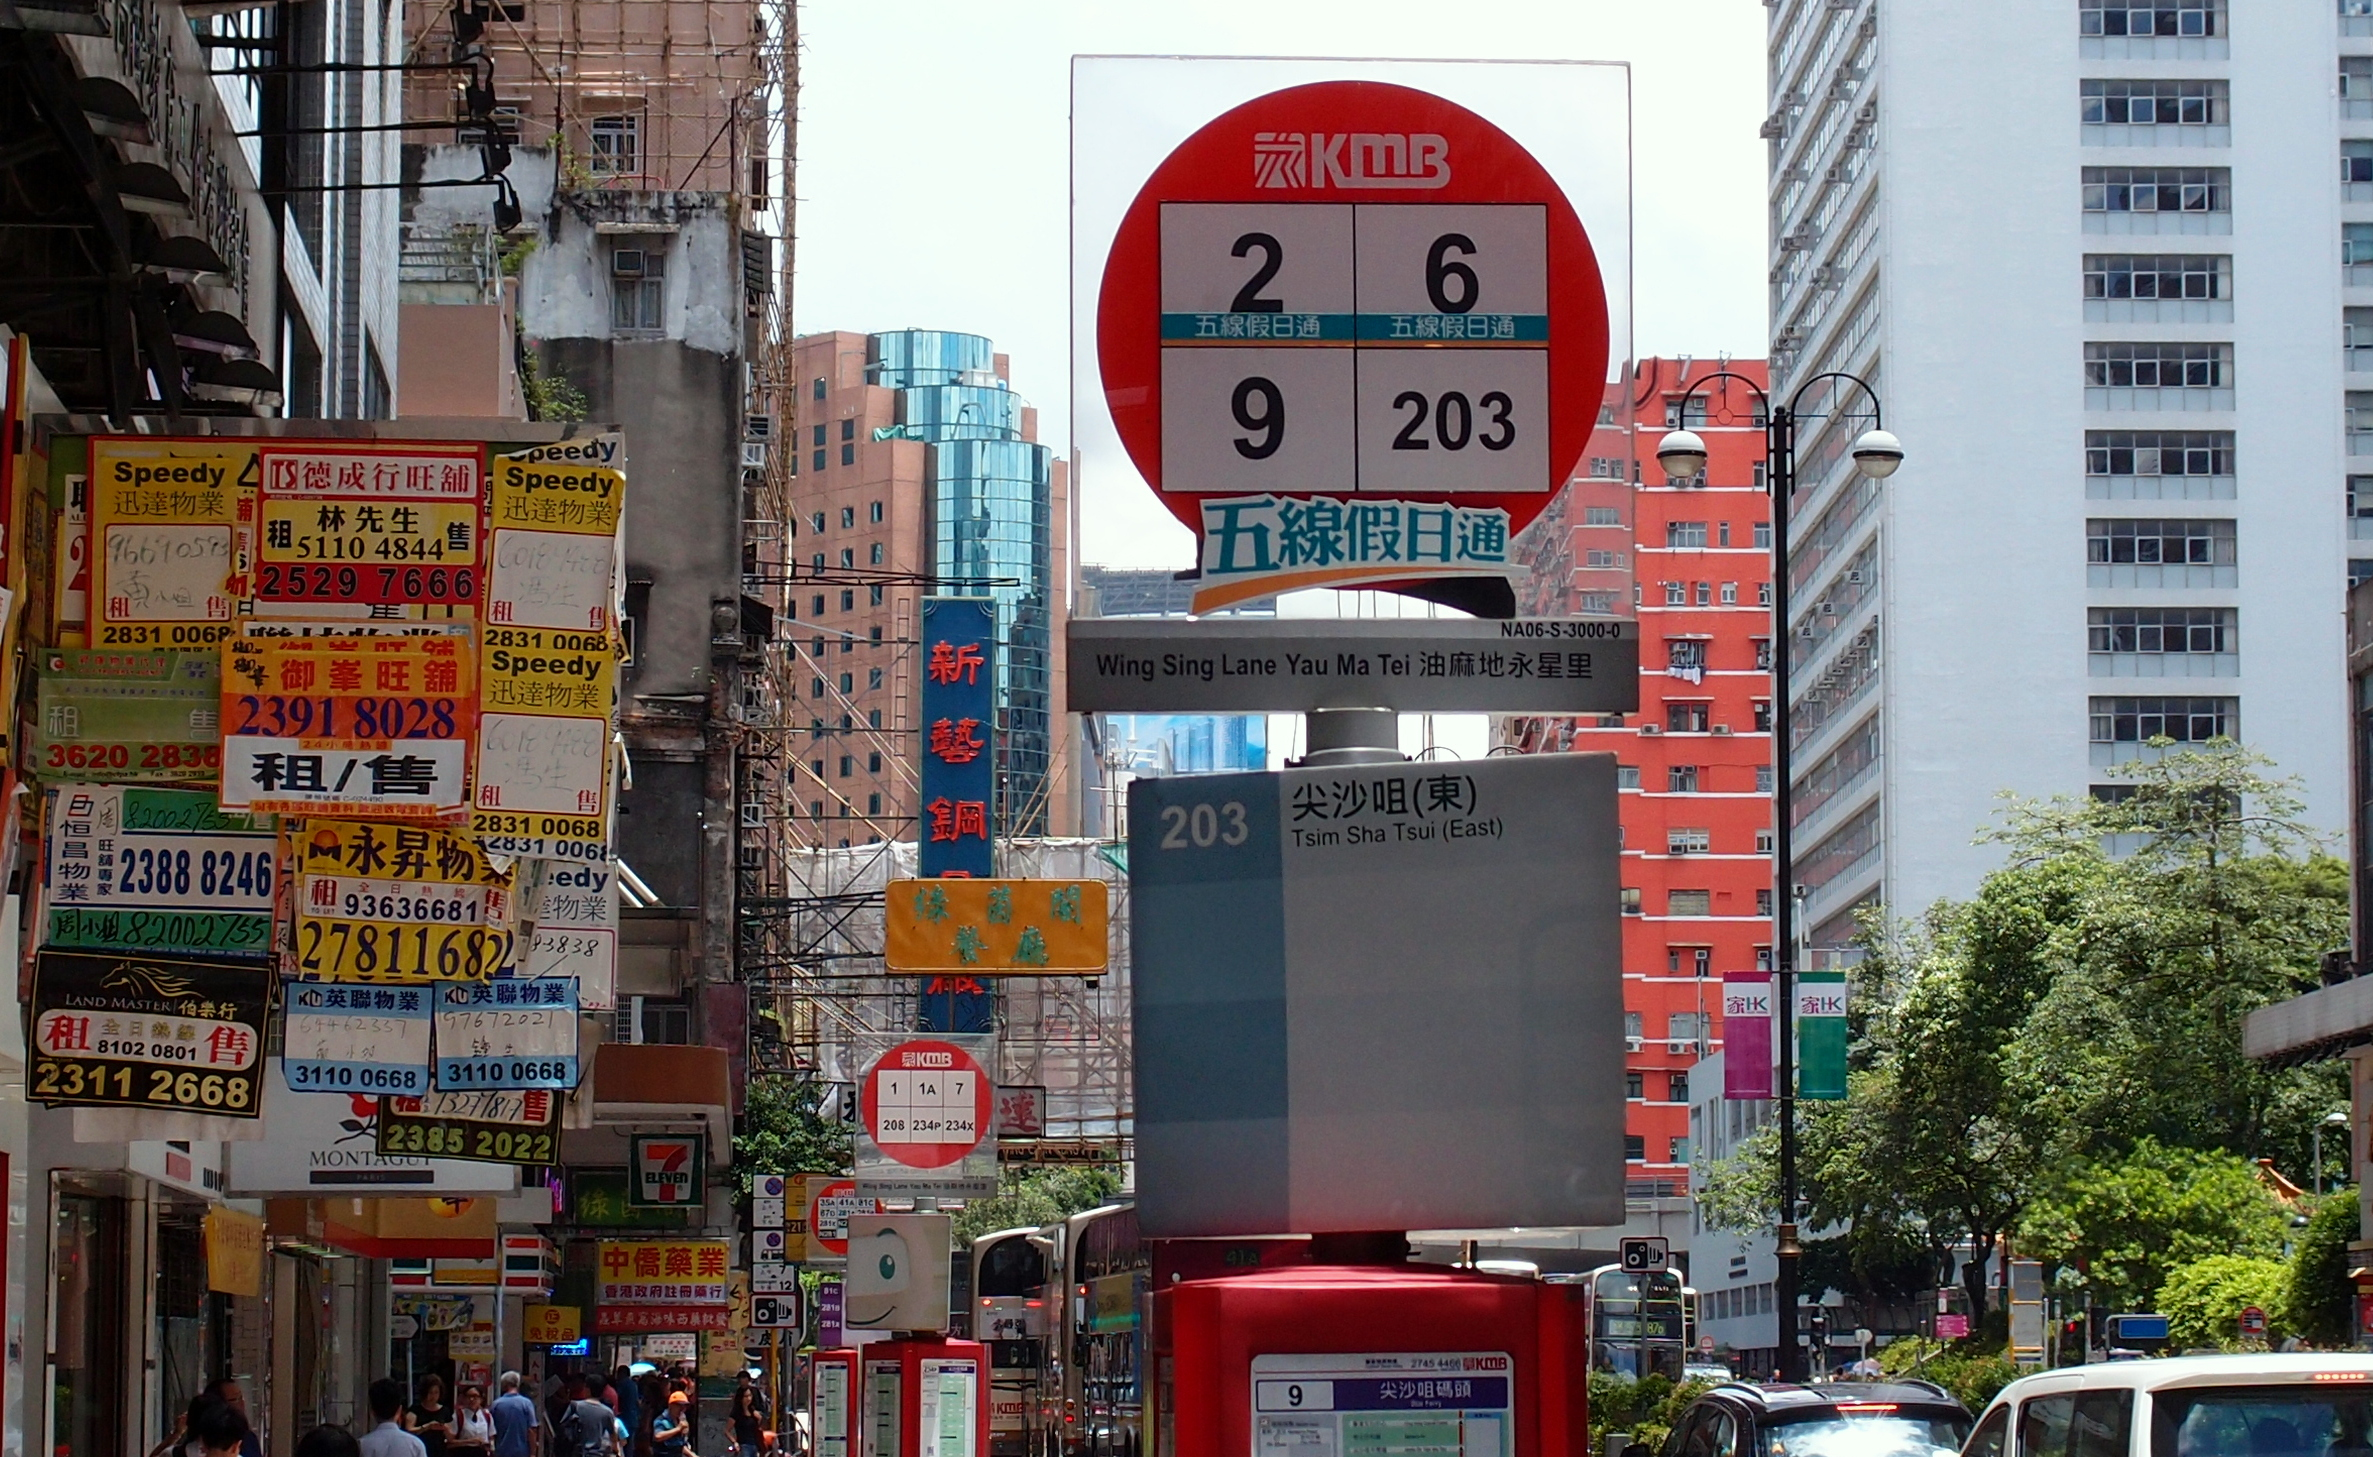 Take a bus rather than the MTR in Kowloon